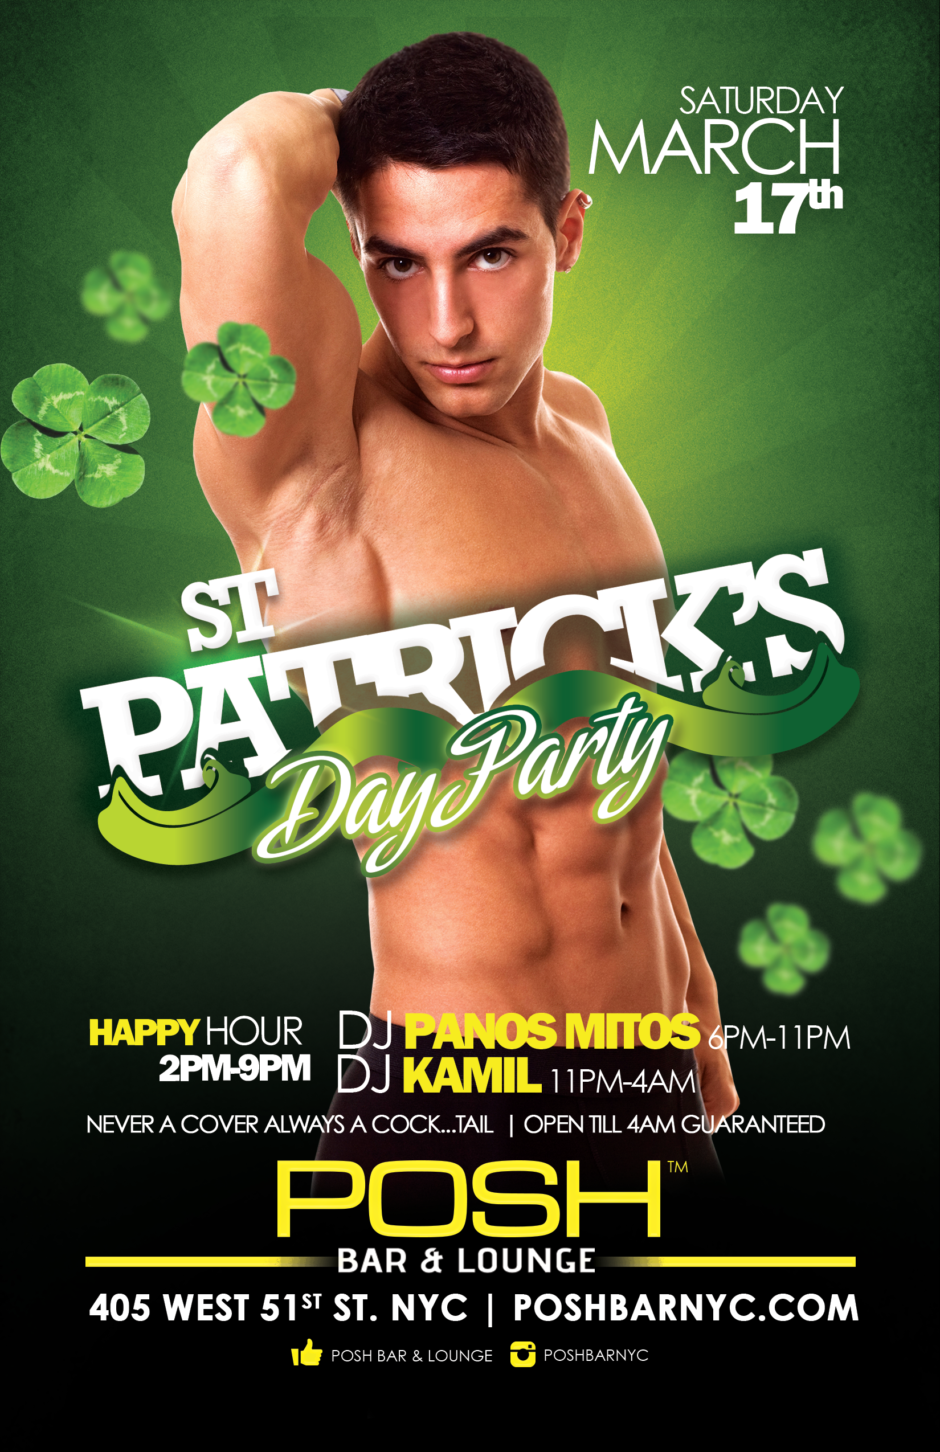 http://poshbarnyc.com/wp-content/uploads/2018/01/POSH-MARCH17-_-ST-PATRICKS-DAY-1.png